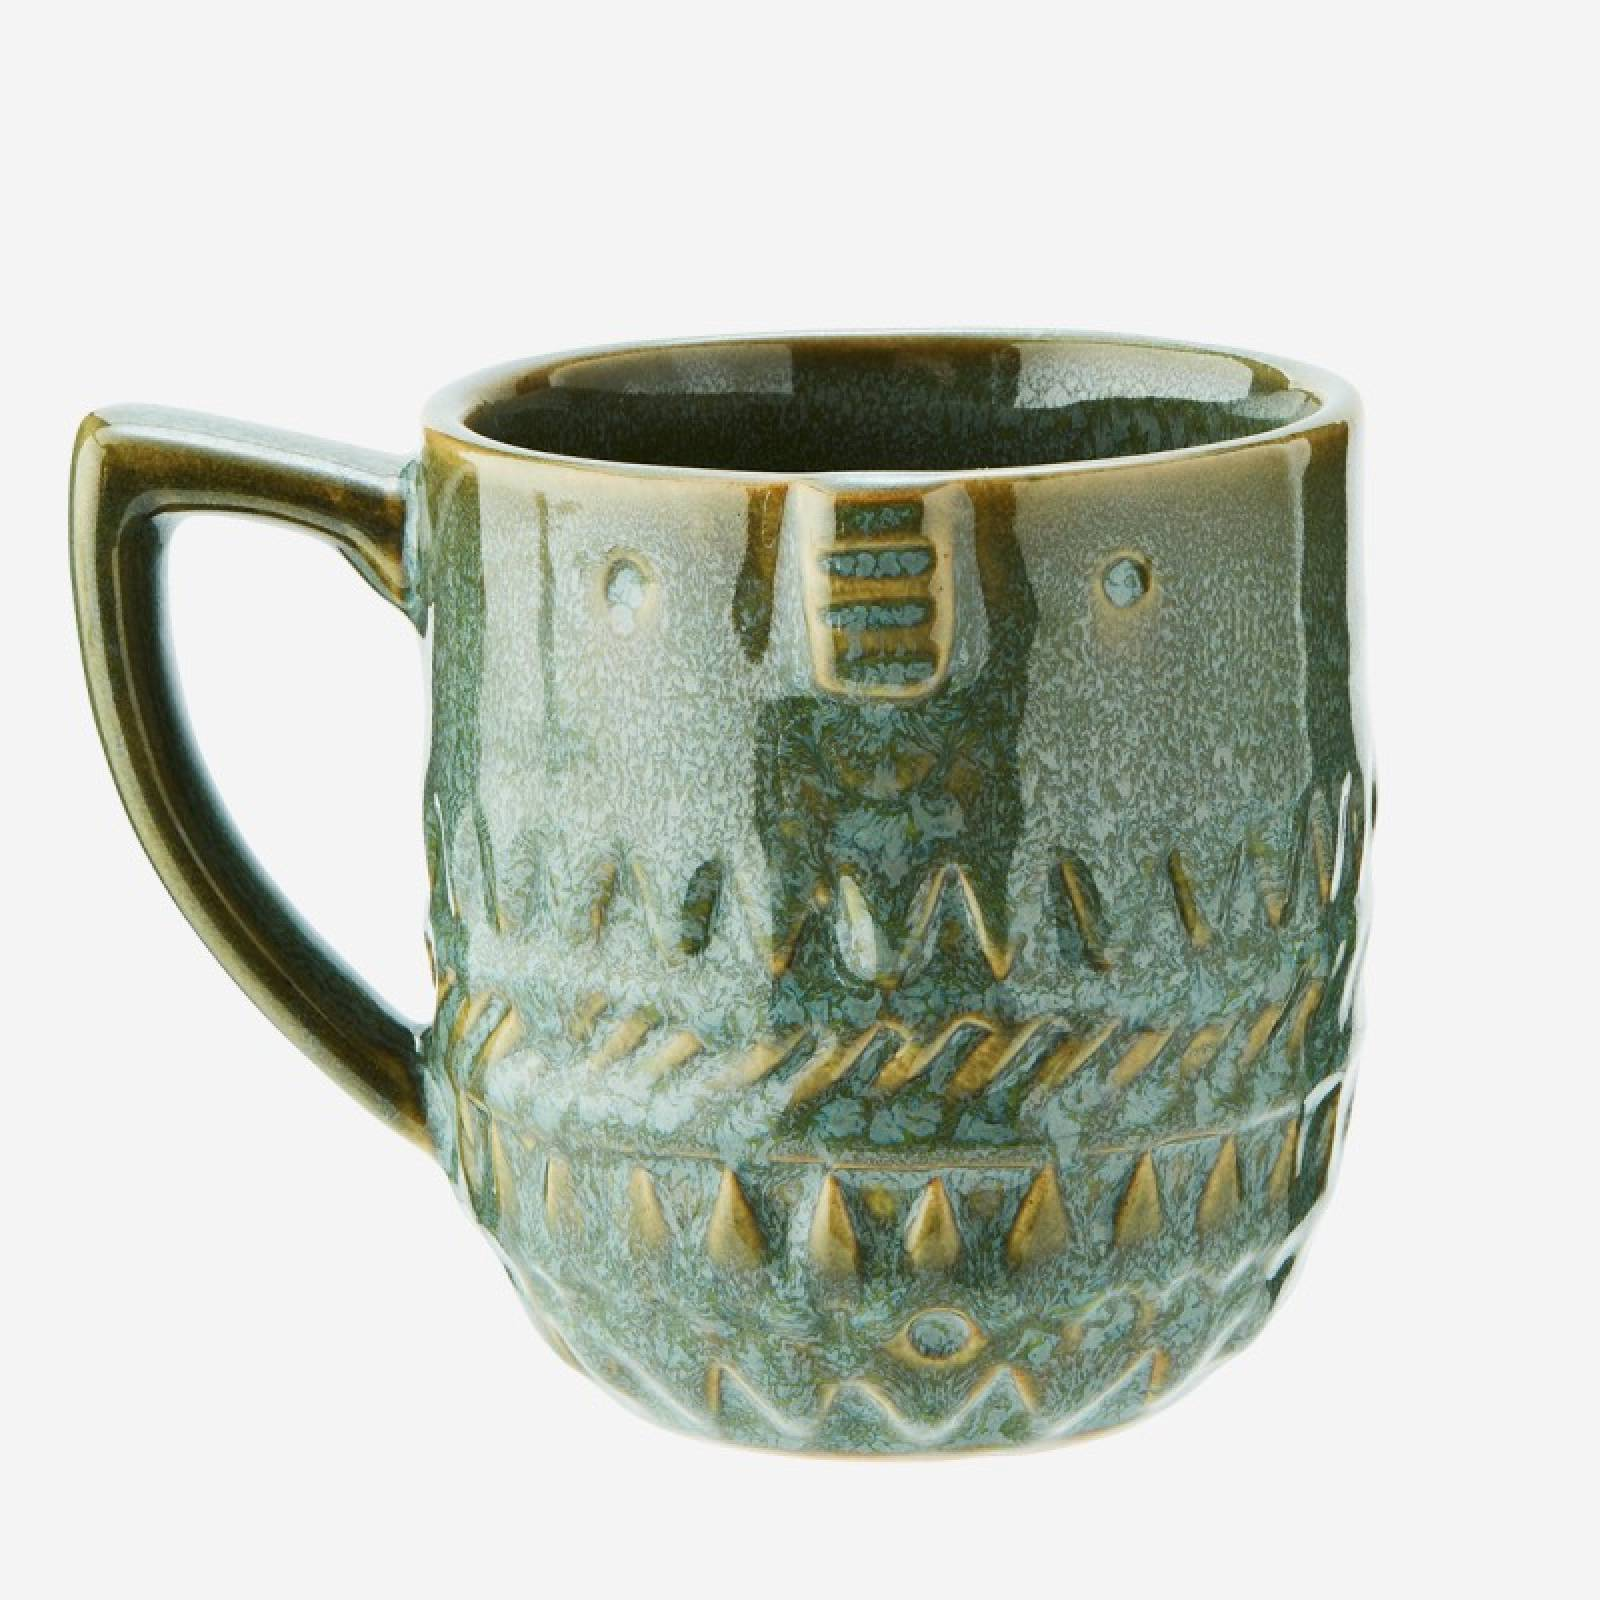 Stoneware Mug With Face Imprint In Green